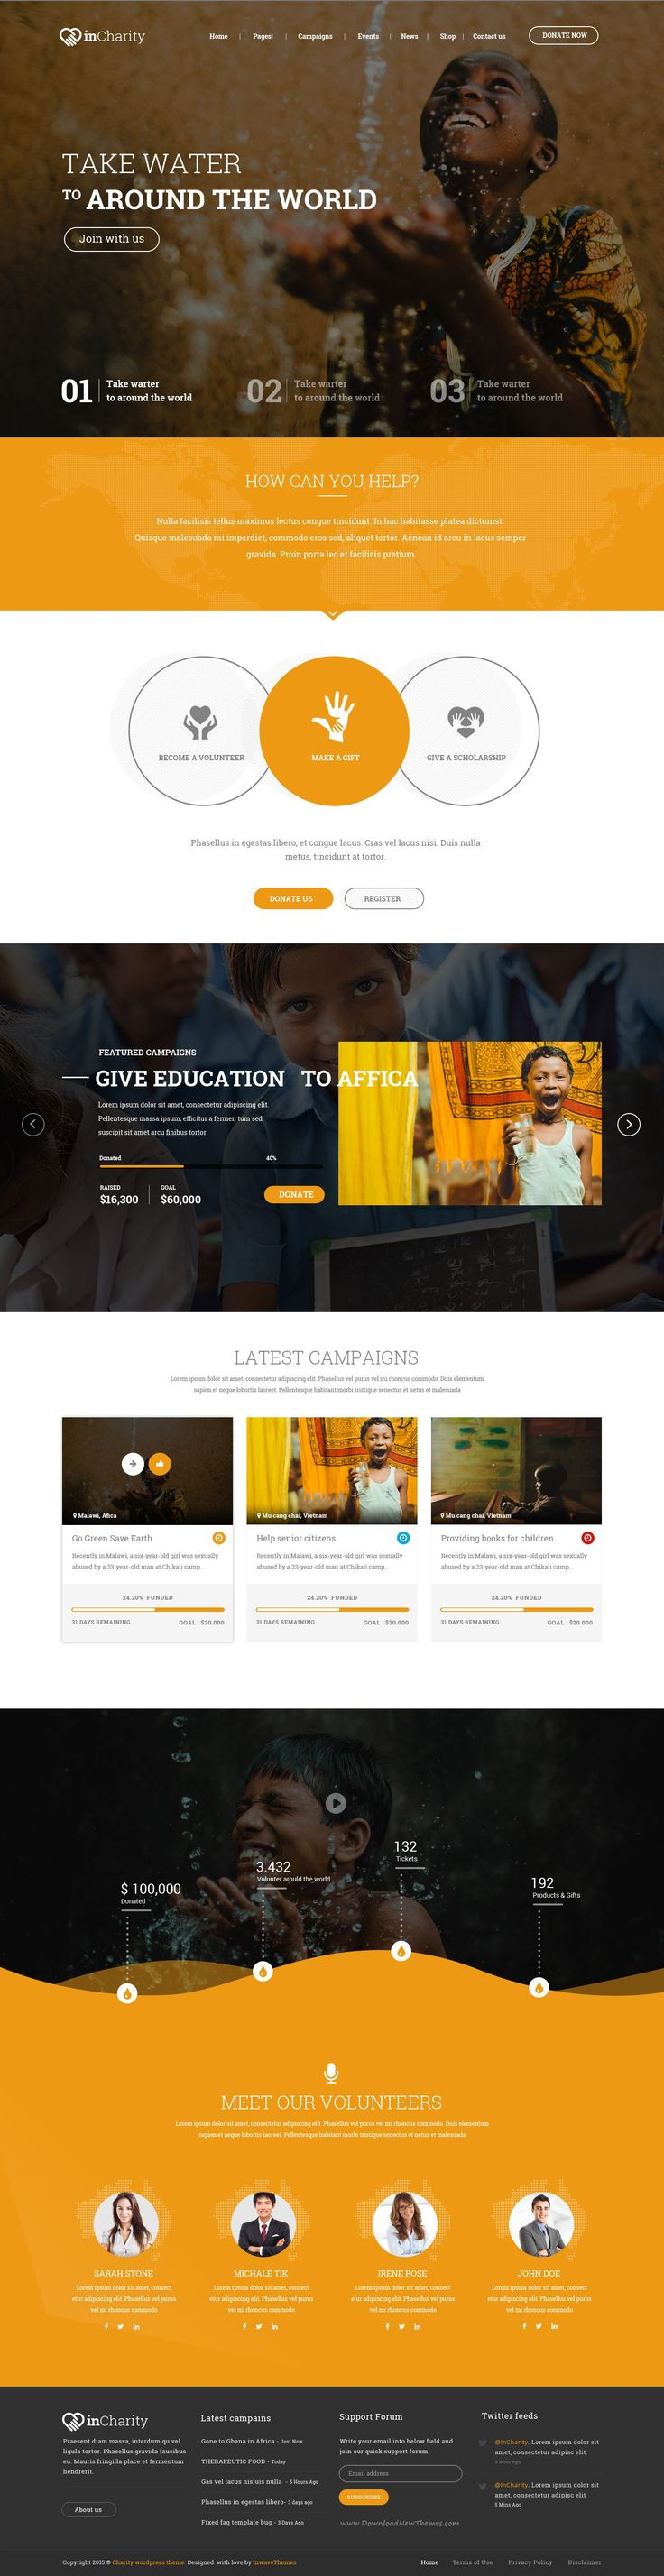 InCharity might be one of the best PSD template at Themeforest for Charity, Fundraising and Non-Profit and corporate website. Some of the key features: responsive design, parallax scrolling, 6+ homepage, #Charity and #Fundraising design, woo-commerce, free font and icons #psdtemplate